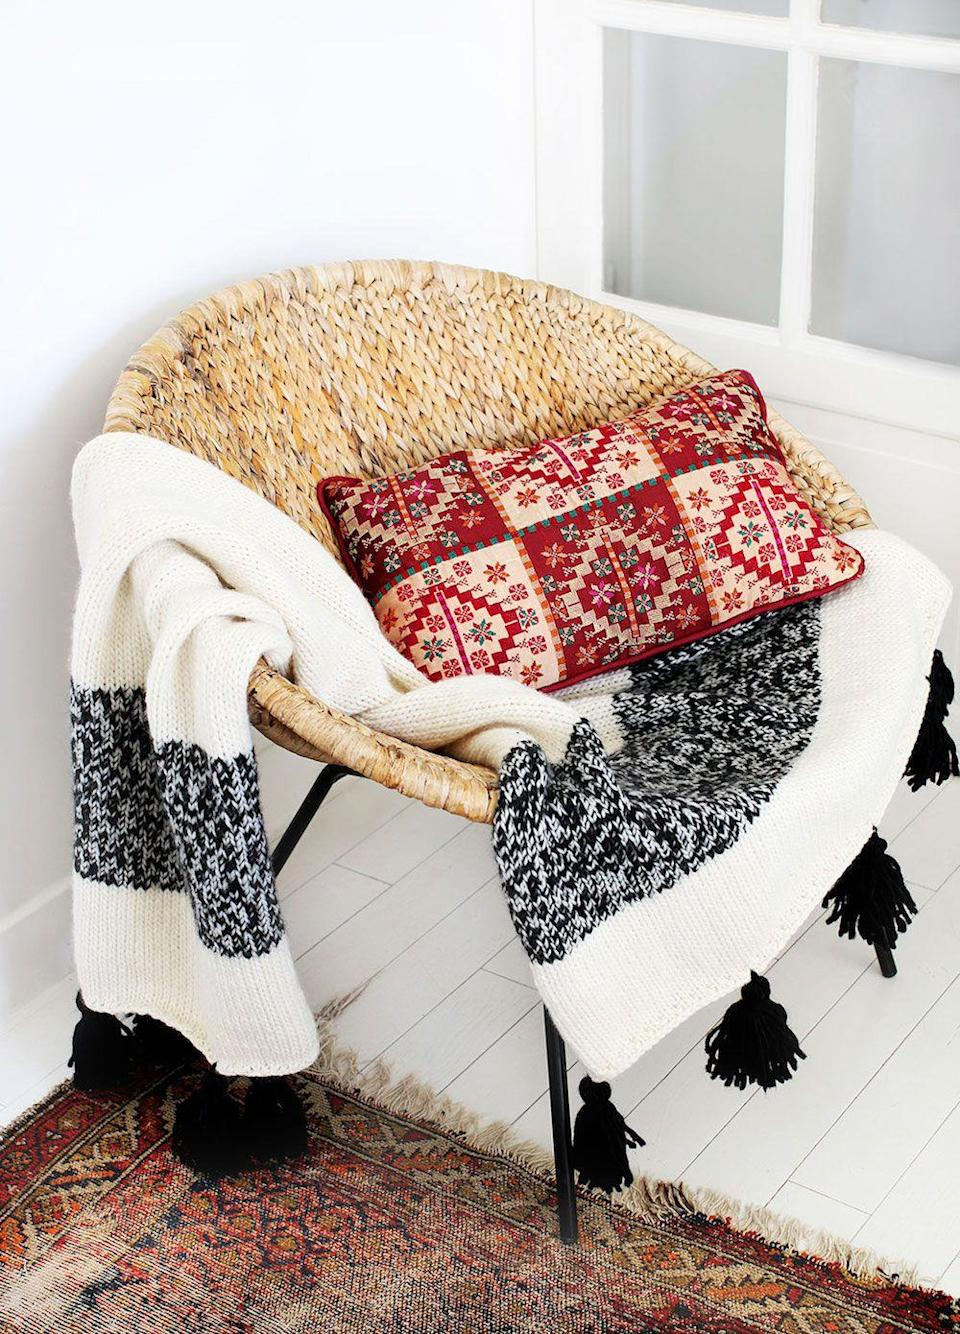 """<p><a class=""""link rapid-noclick-resp"""" href=""""https://www.weareknitters.co.uk/knitting-kit/knitting-levels/beginner-level/the-kilim-blanket"""" rel=""""nofollow noopener"""" target=""""_blank"""" data-ylk=""""slk:BUY NOW"""">BUY NOW</a> <strong>£85, We Are Knitters</strong></p><p>Why should little ones get the best gifts? This blanket is just as soft, and the perfect make for someone who loves a stylish, cosy home. </p><p><strong>What's in the kit? </strong>7 skeins of wool, 8mm knitting needles, the pattern, a smaller knitter's sewing needle, and the embroidered label.</p><p><strong>Best for:</strong> Fashionistas who want their home to look as good as their Instagram feed.</p>"""